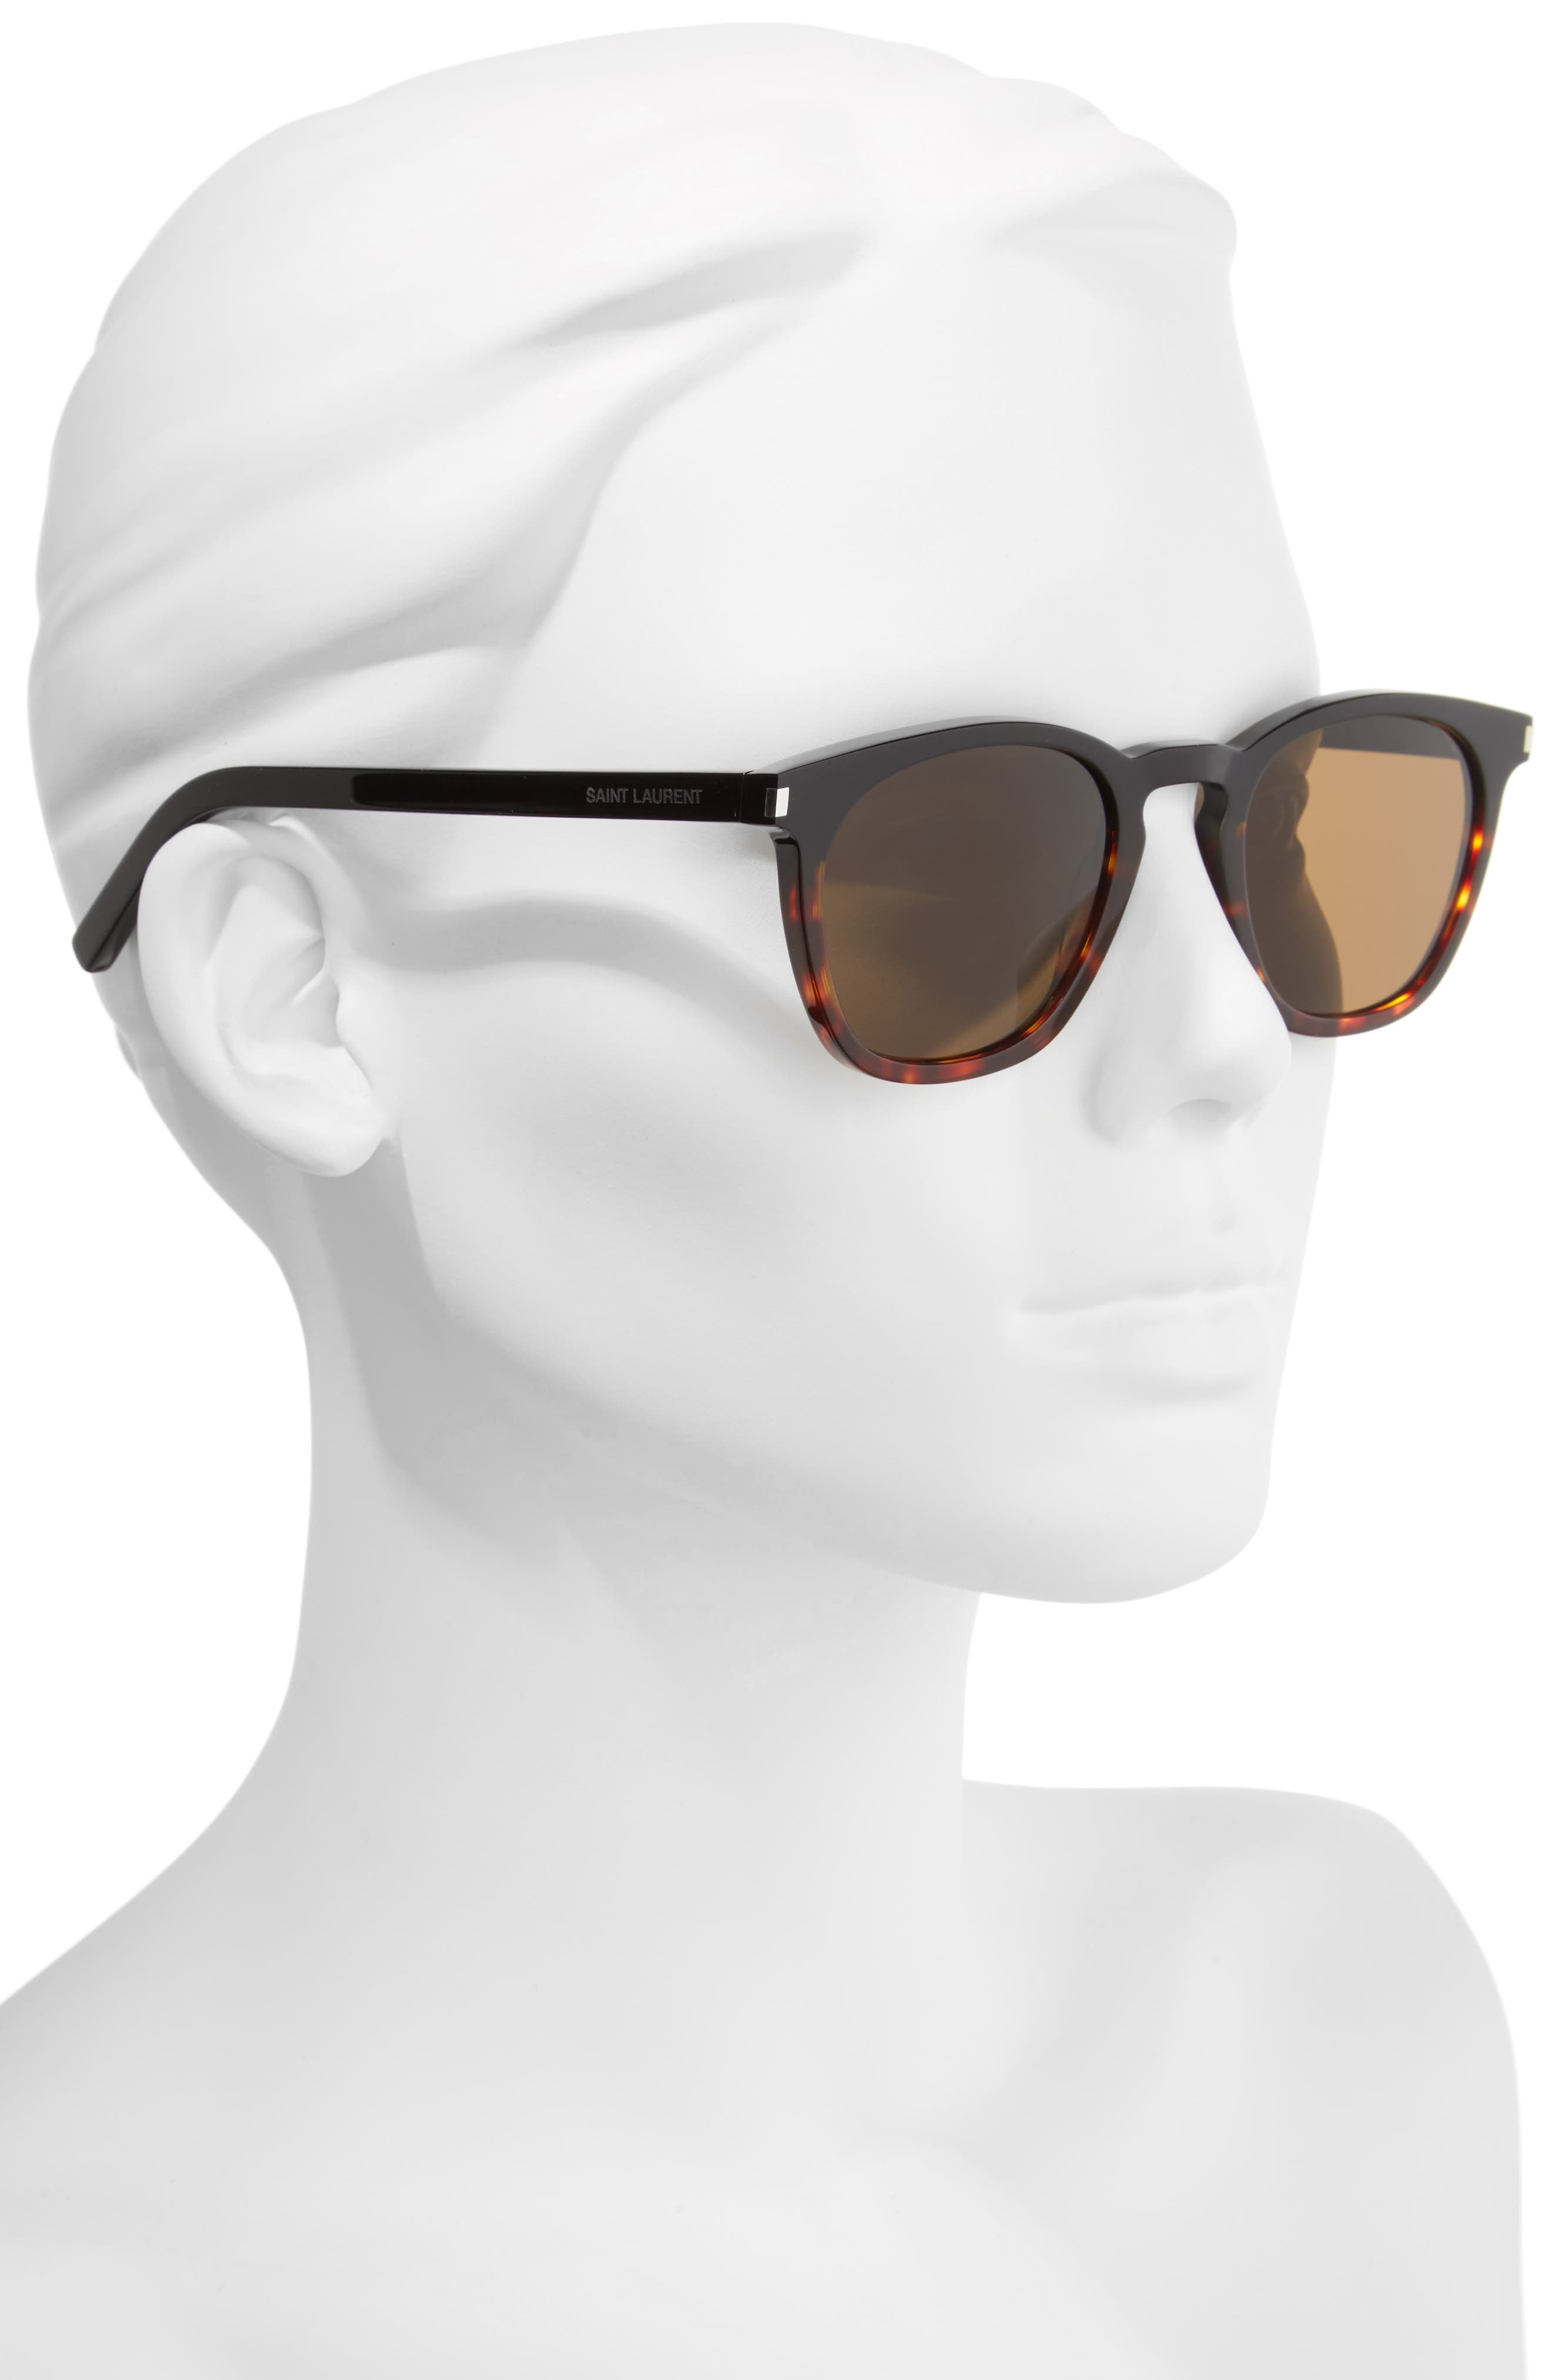 SL 28 51mm Keyhole Sunglasses,                             Alternate thumbnail 2, color,                             001